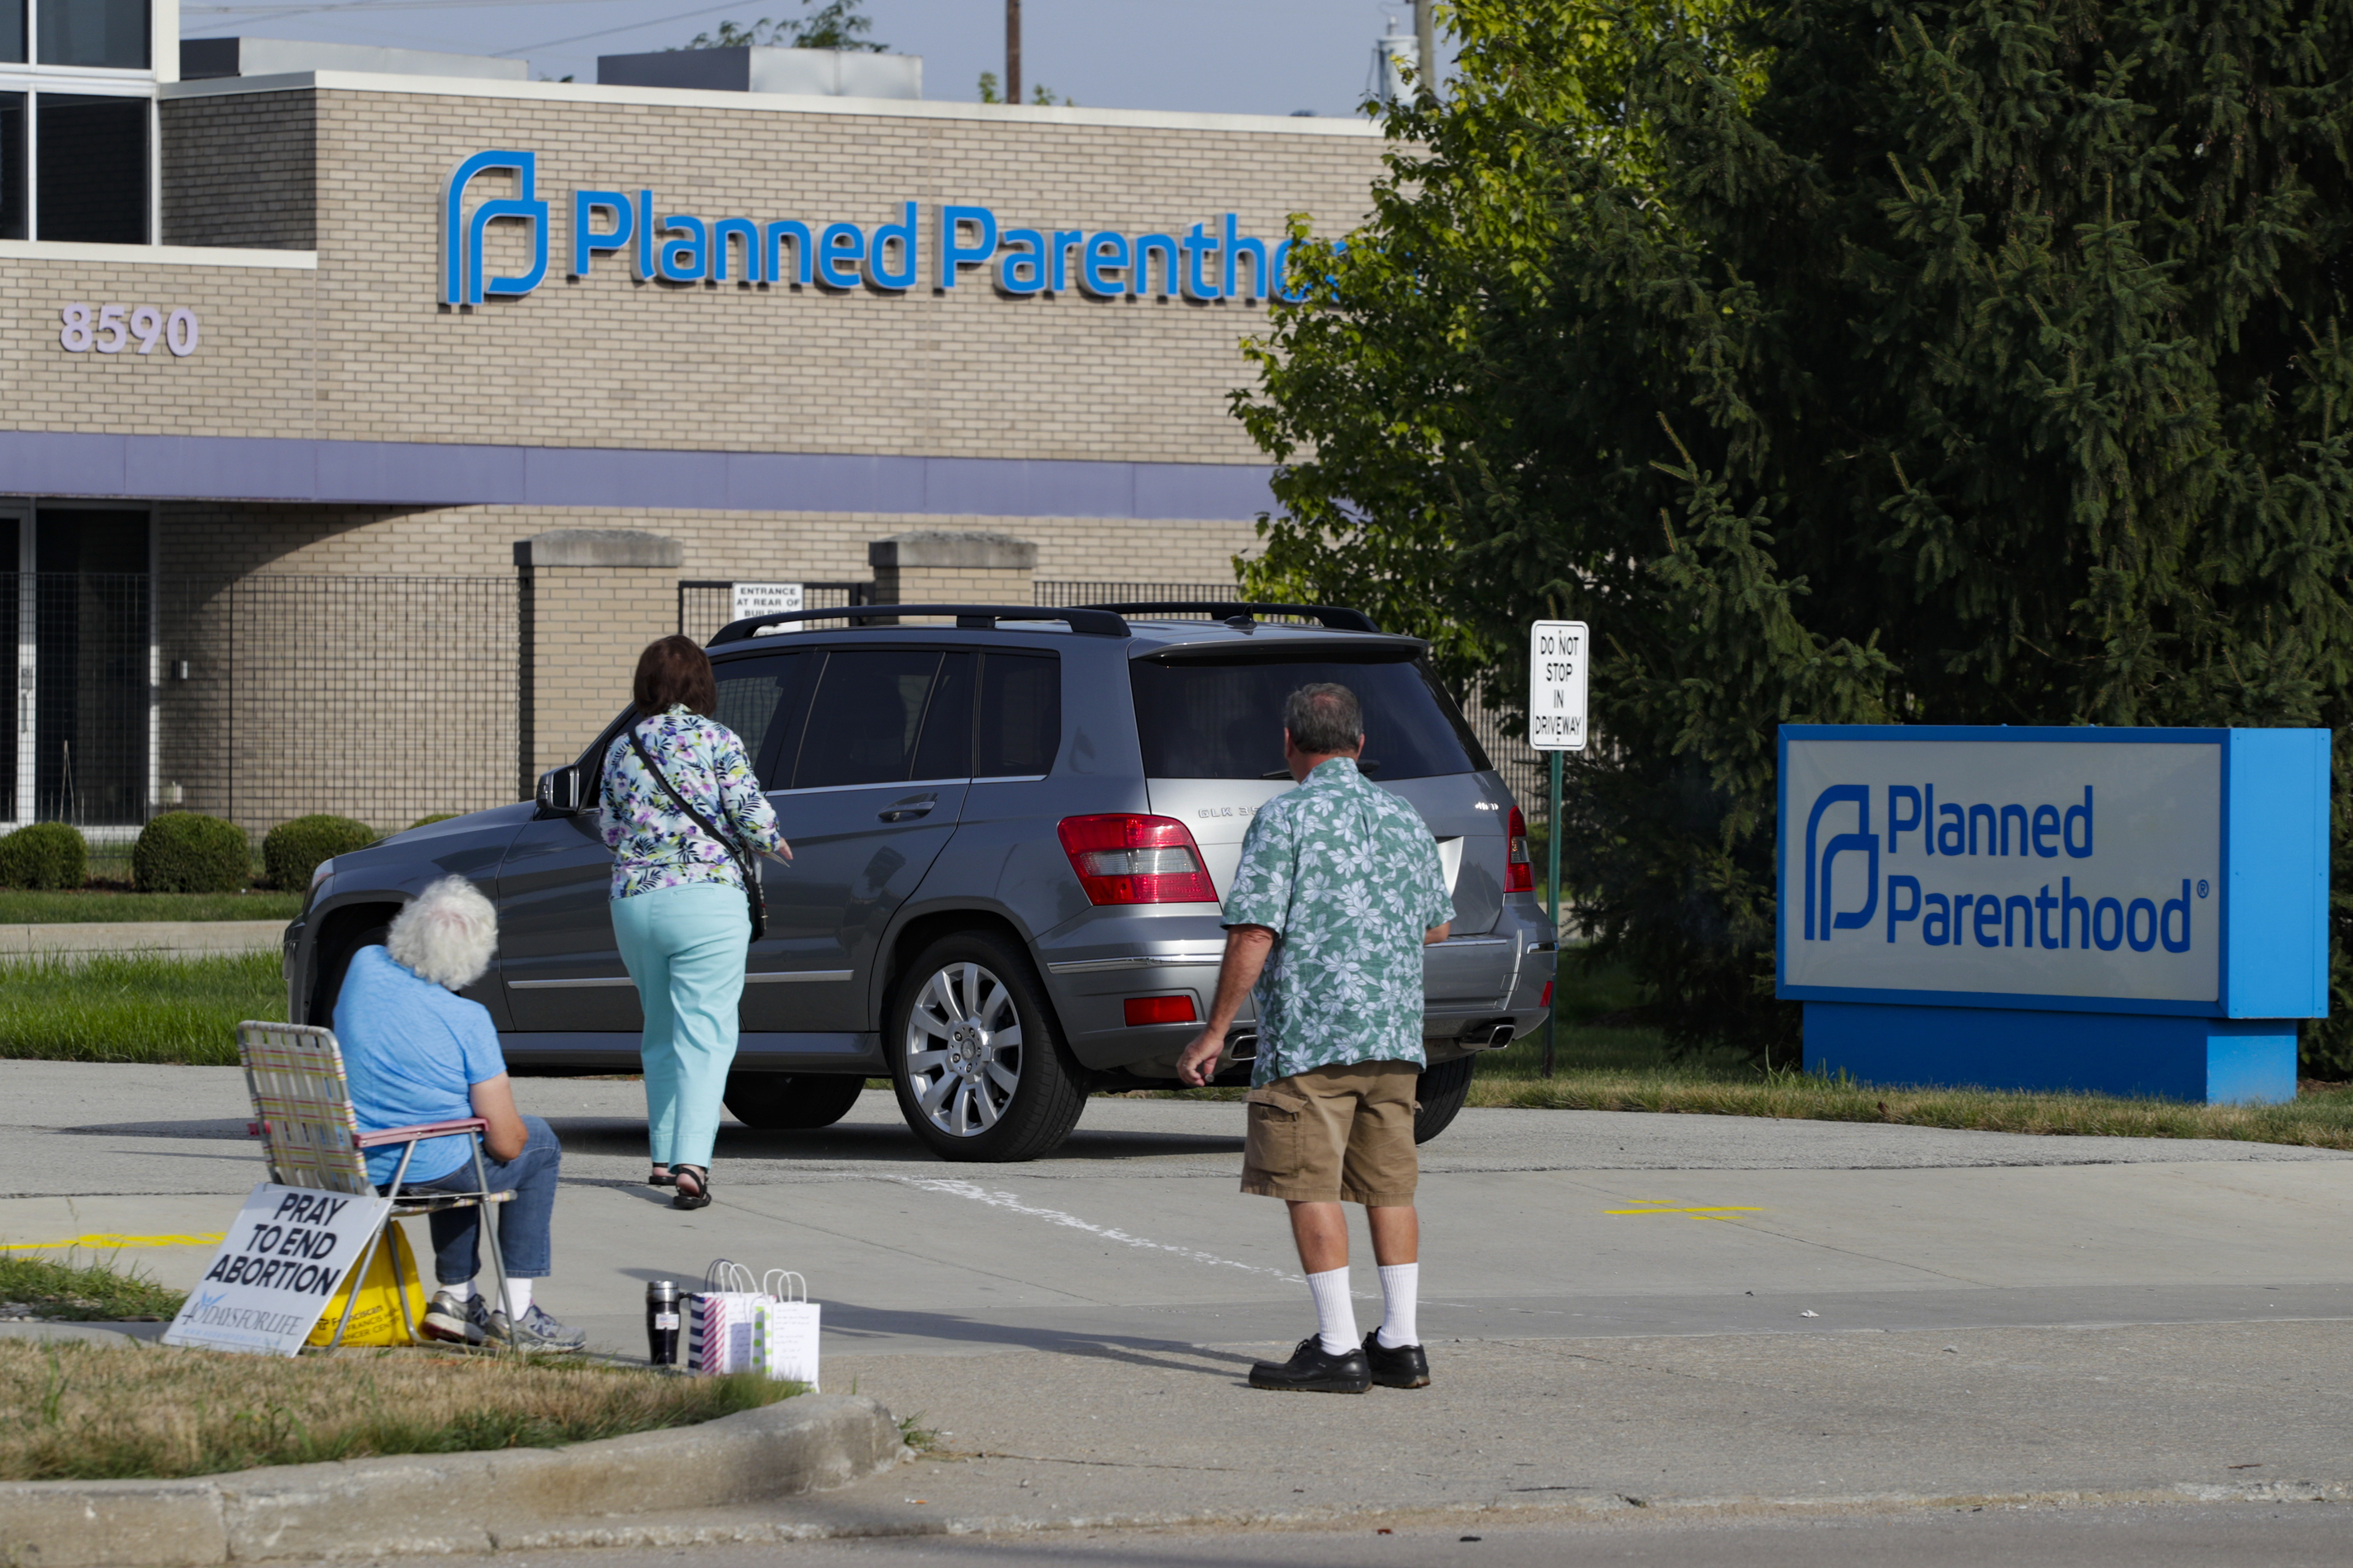 HHS announces new actions to 'bolster access' to abortions in Texas after restrictive law